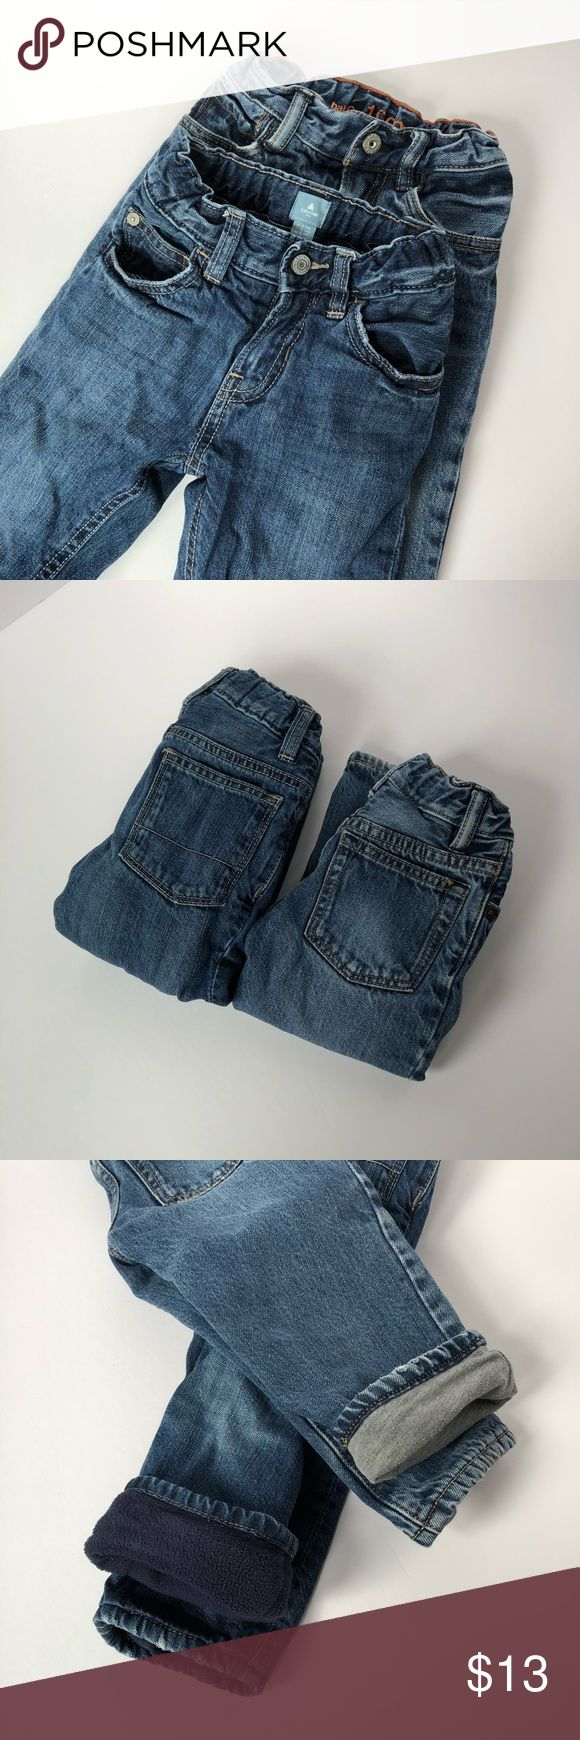 Gap 2T lined jeans Baby Gap jeans, size 2T. Both pairs lined. One lined in gray jersey material and the other in navy fleece. Perfect for keeping warm in winter! Great used condition. Adjustable waist on both. GAP Bottoms Jeans